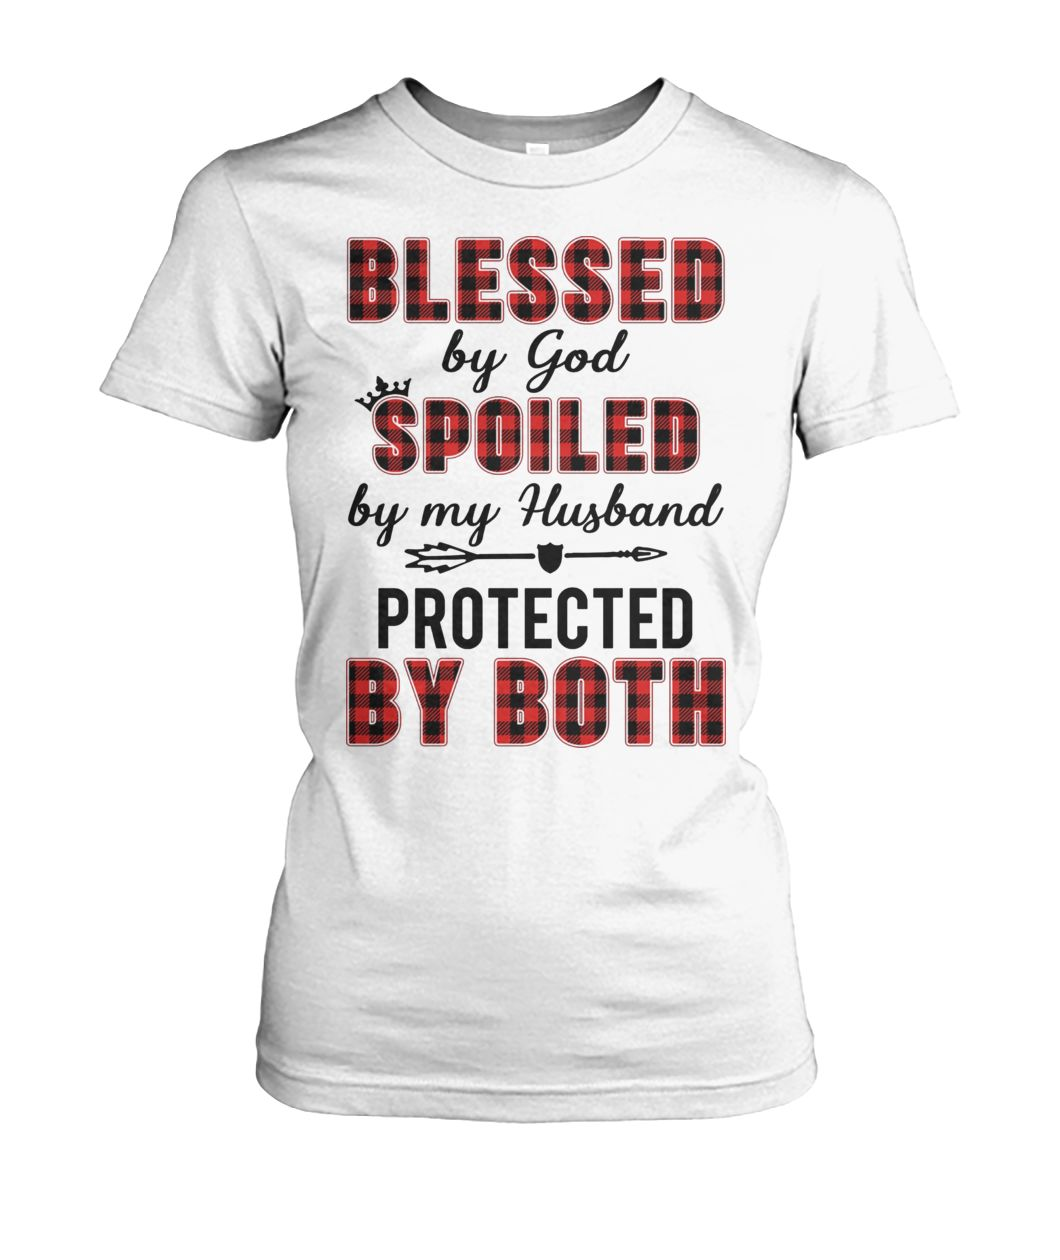 Blessed by god spoiled by my husband protected by both women's crew tee